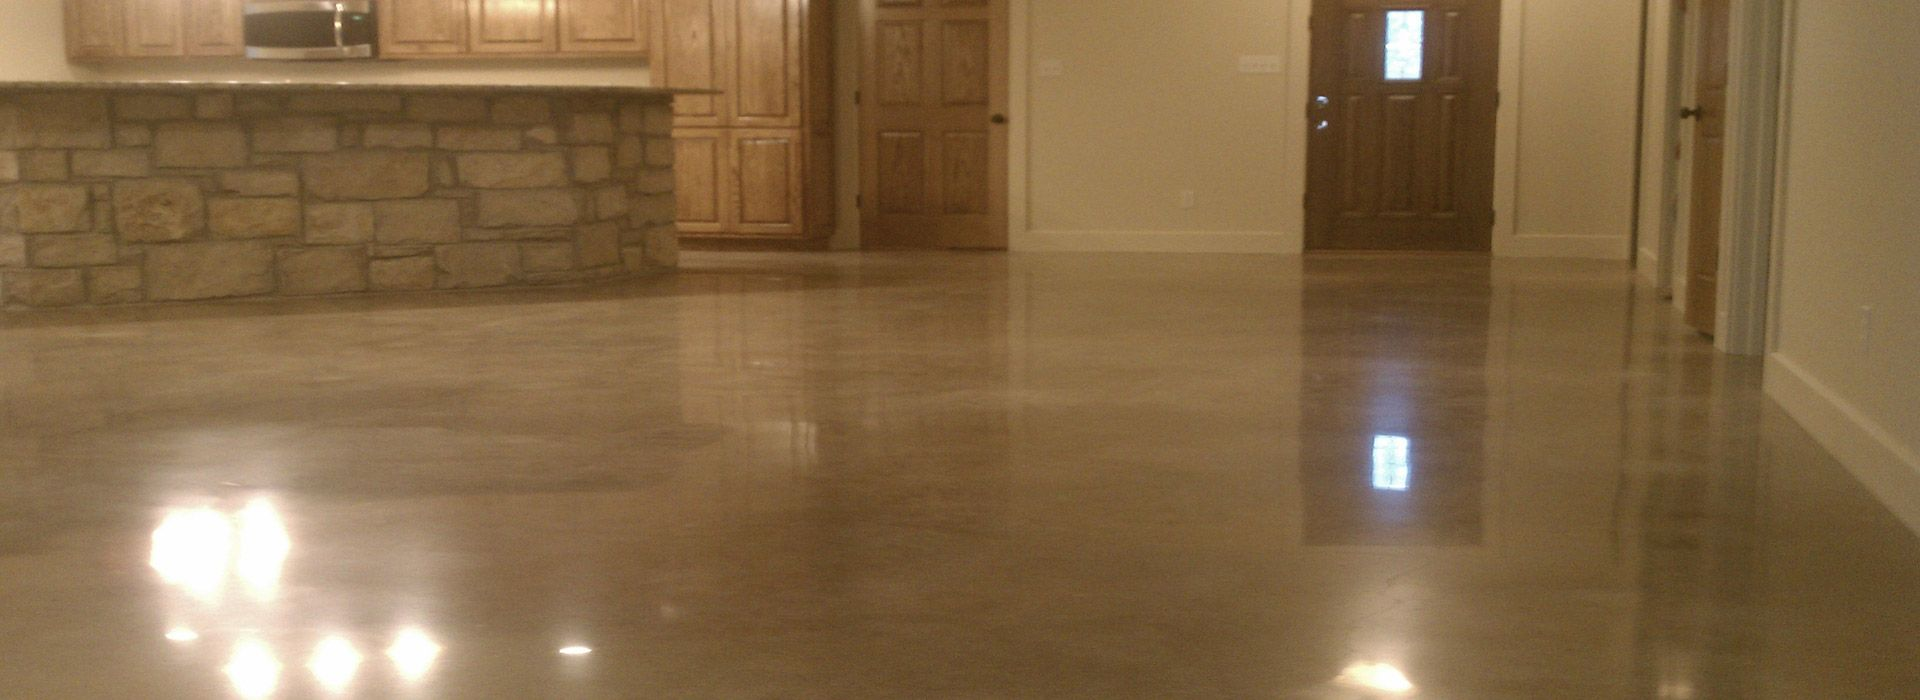 Painted Or Stained Concrete Floors Austin Stained Concrete Polished Concrete Austin Concr Diy Stained Concrete Floors Diy Concrete Stain Stained Concrete